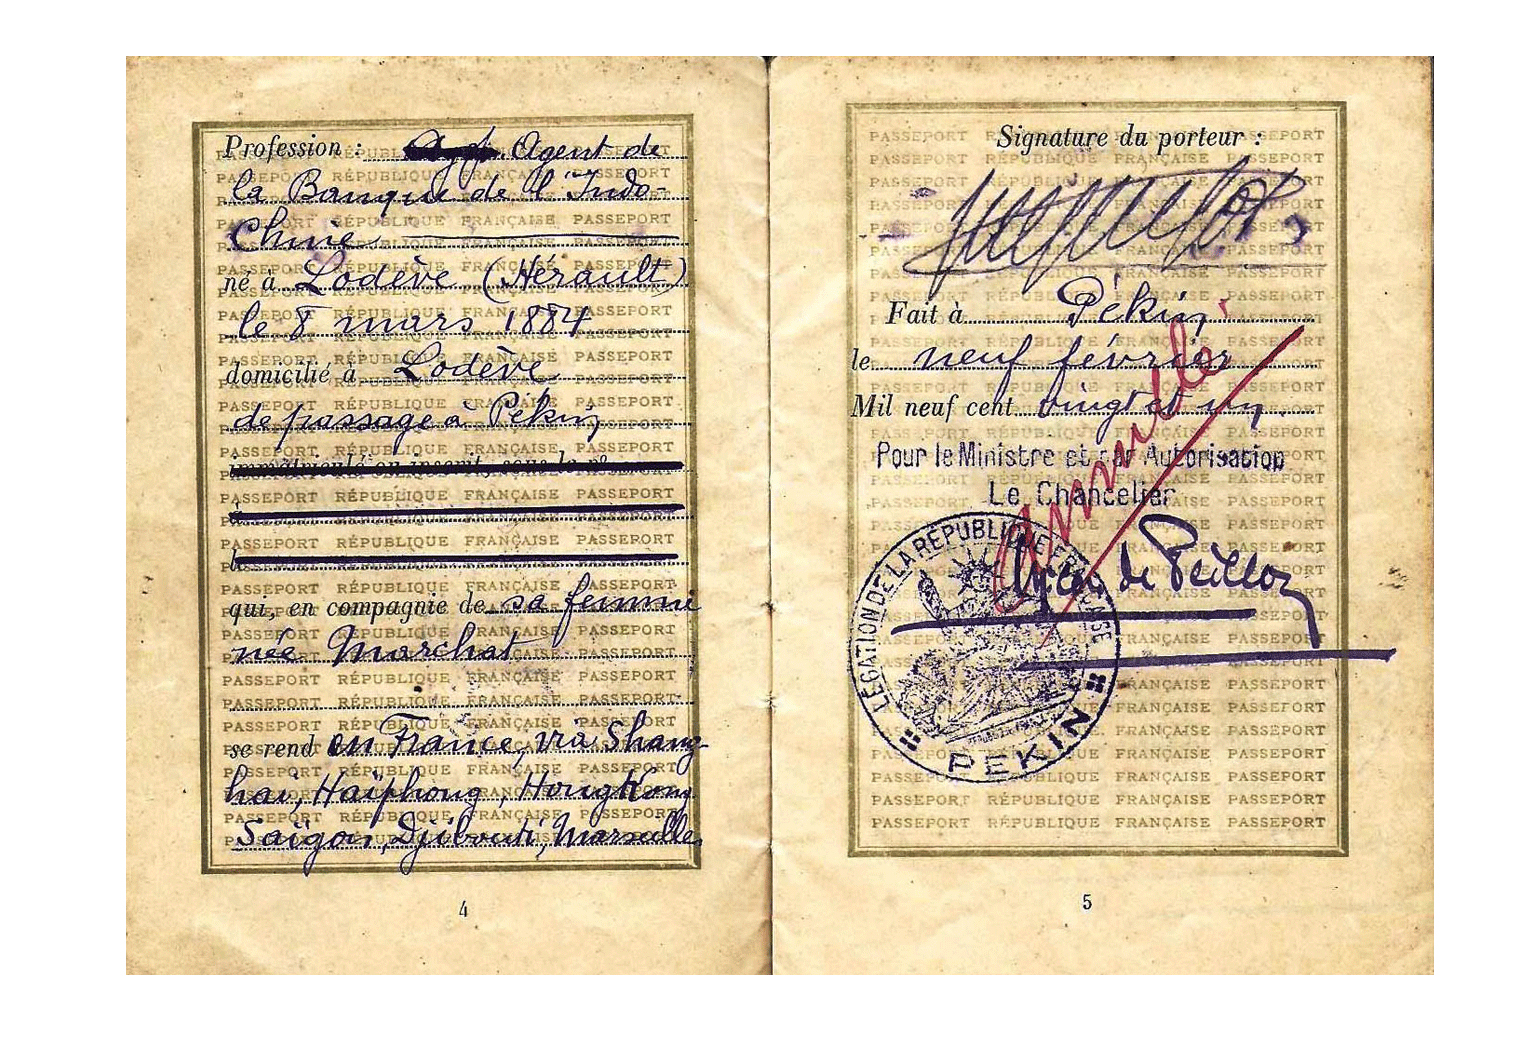 1921 Beijing passport